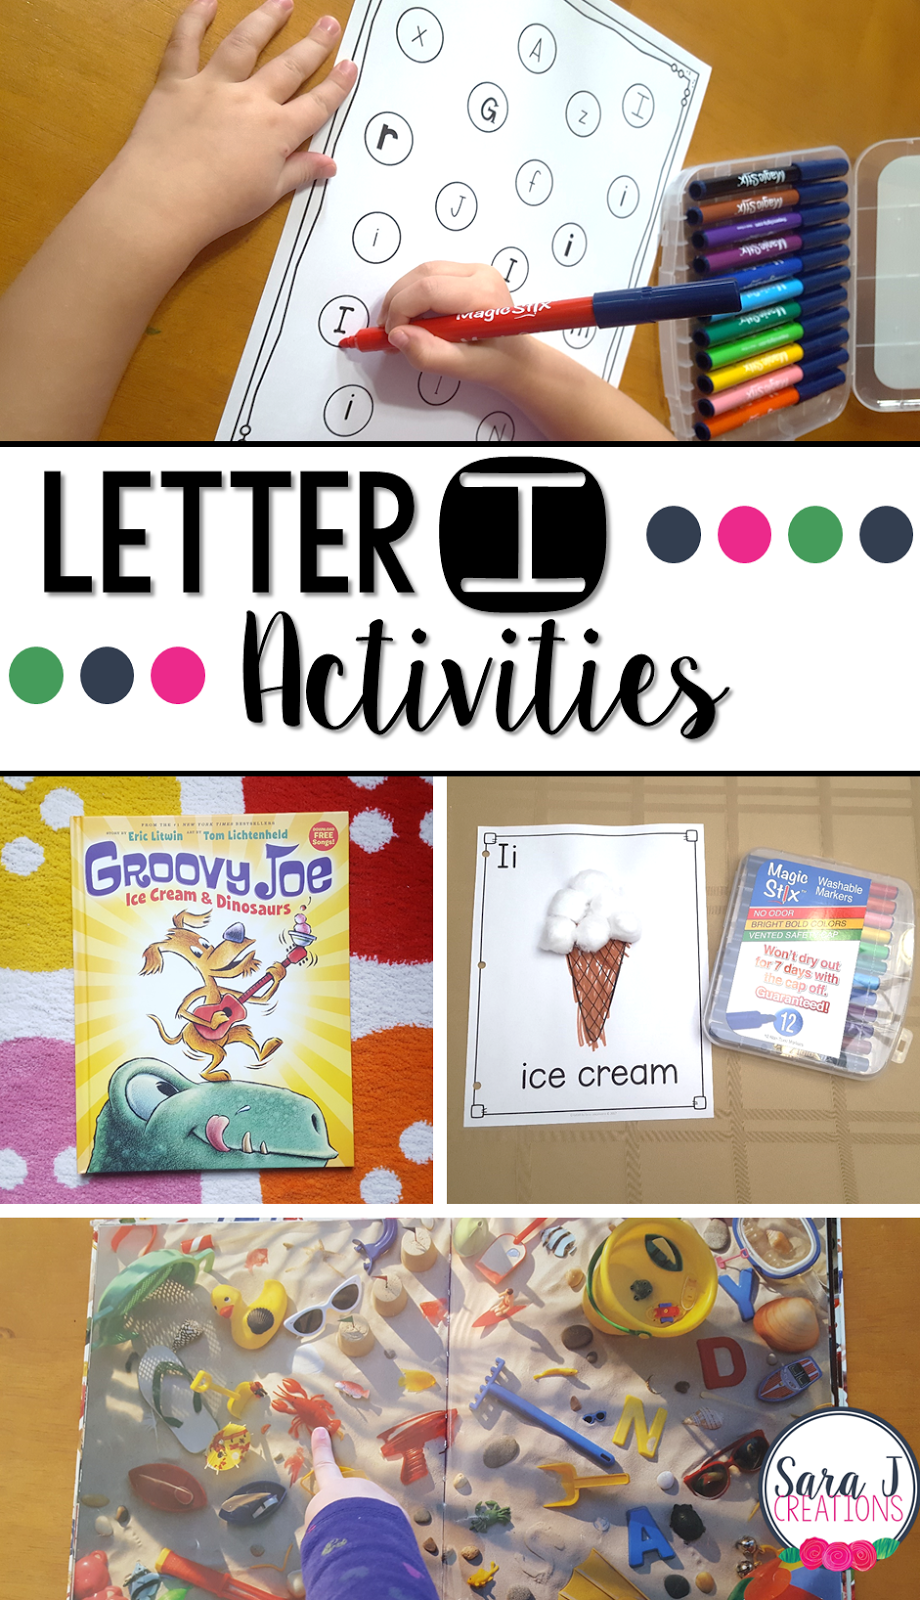 Letter I Activities that would be perfect for #preschool or #kindergarten. Art, fine motor, #literacy and #alphabet practice all rolled into Letter I fun. #sarajcreations